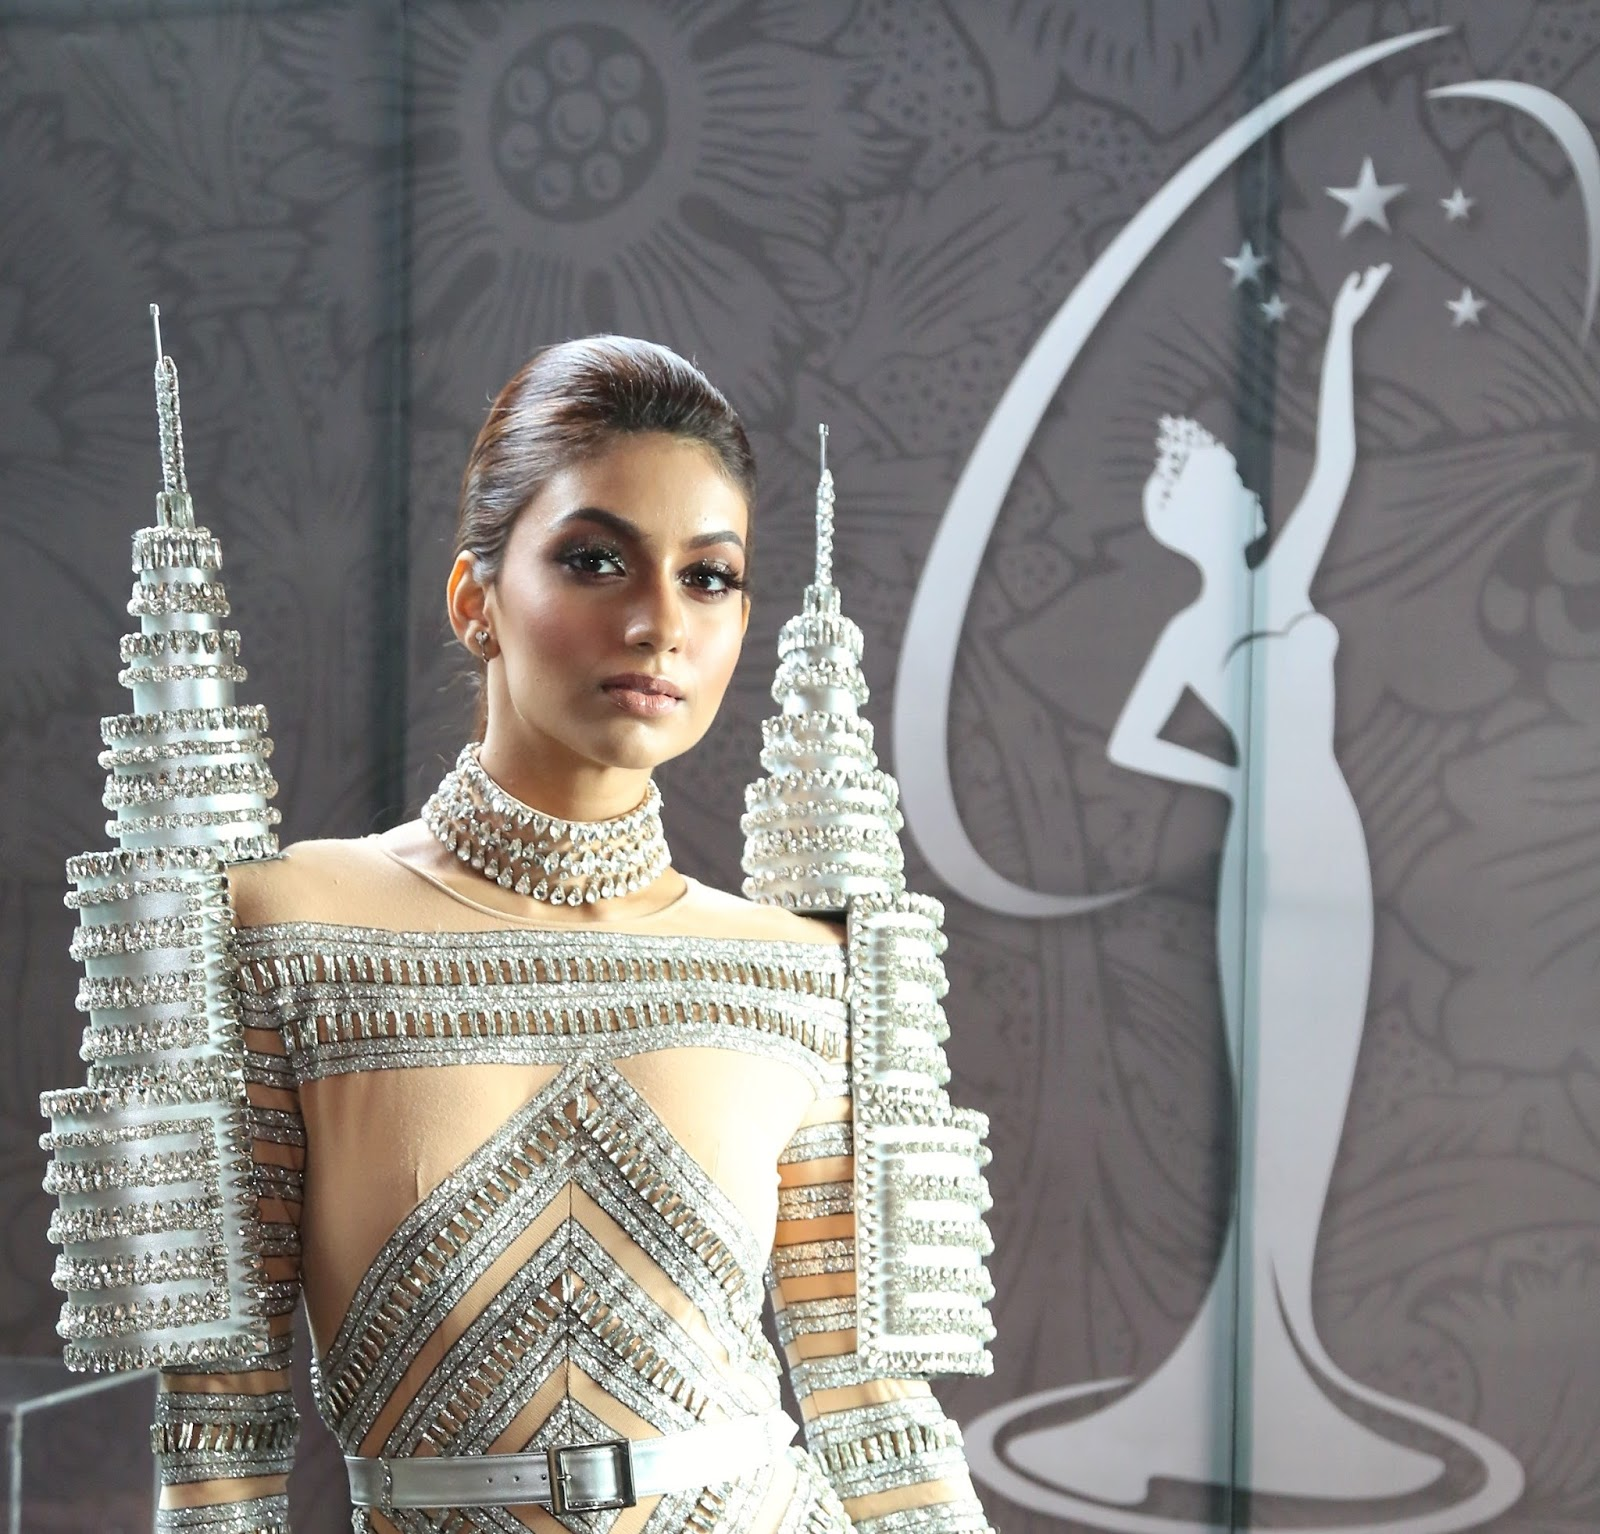 Check out Malaysia's eccentric national costume for Miss Universe